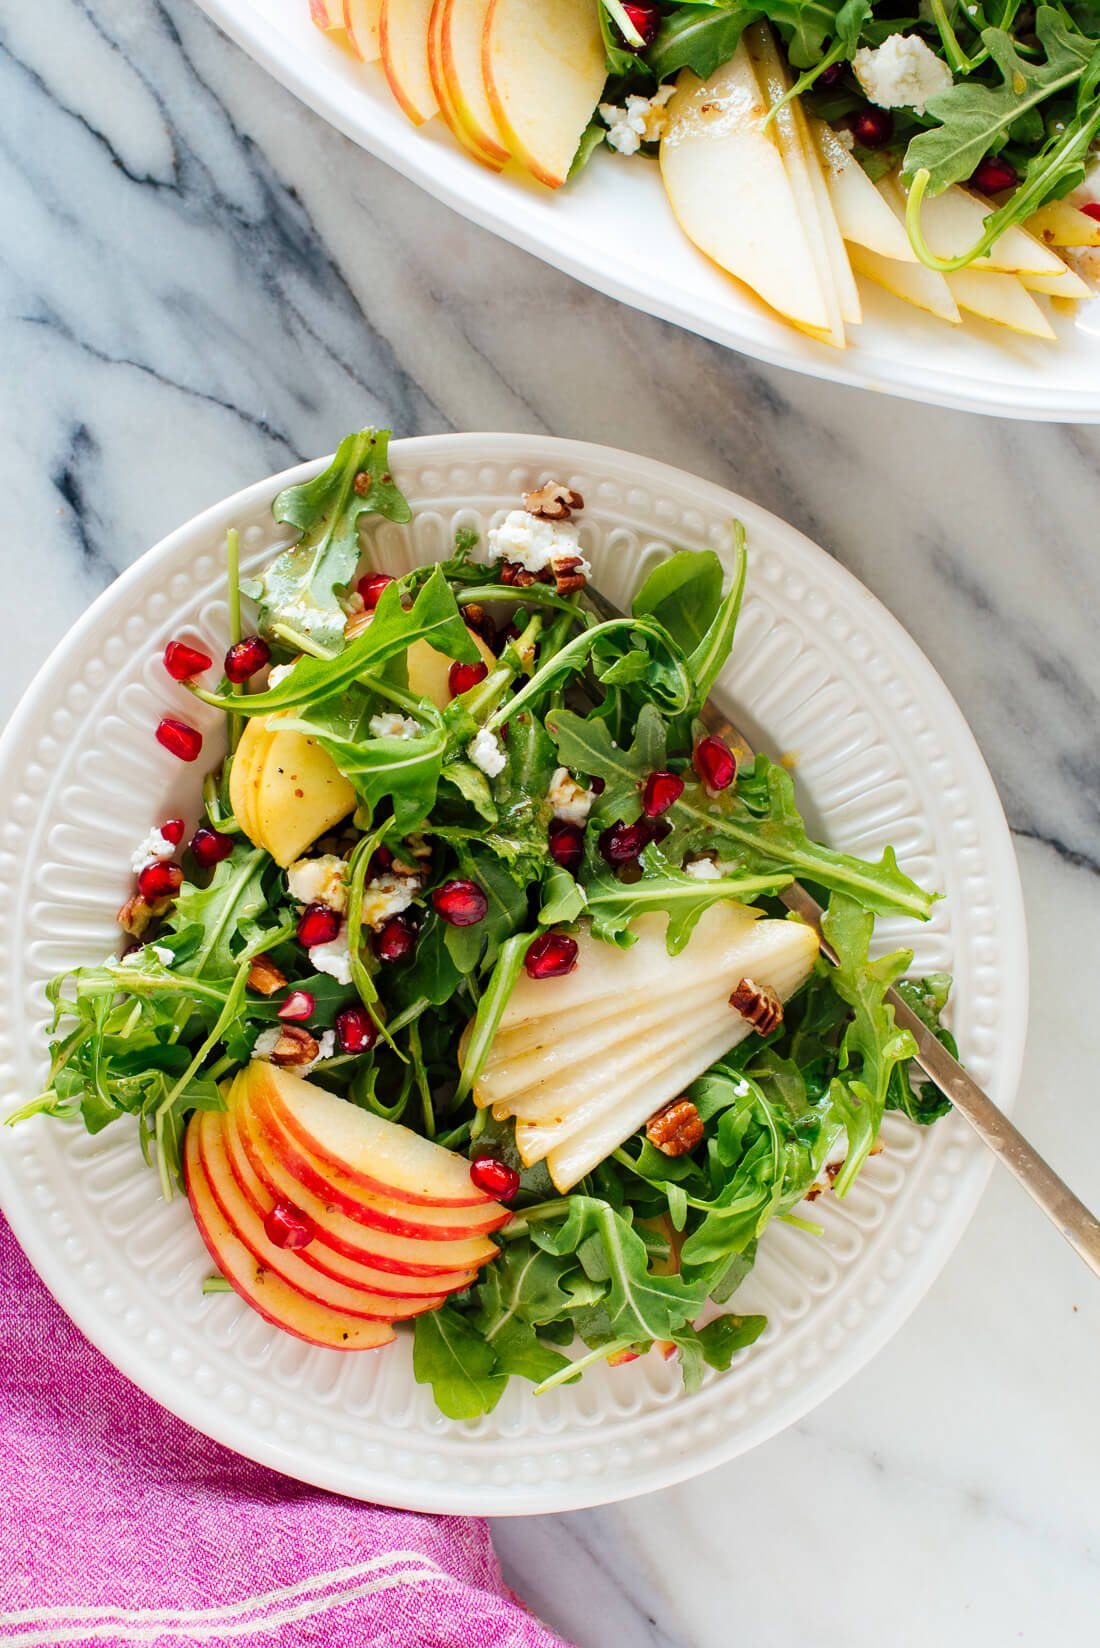 pomegranate pear arugula salad on plate